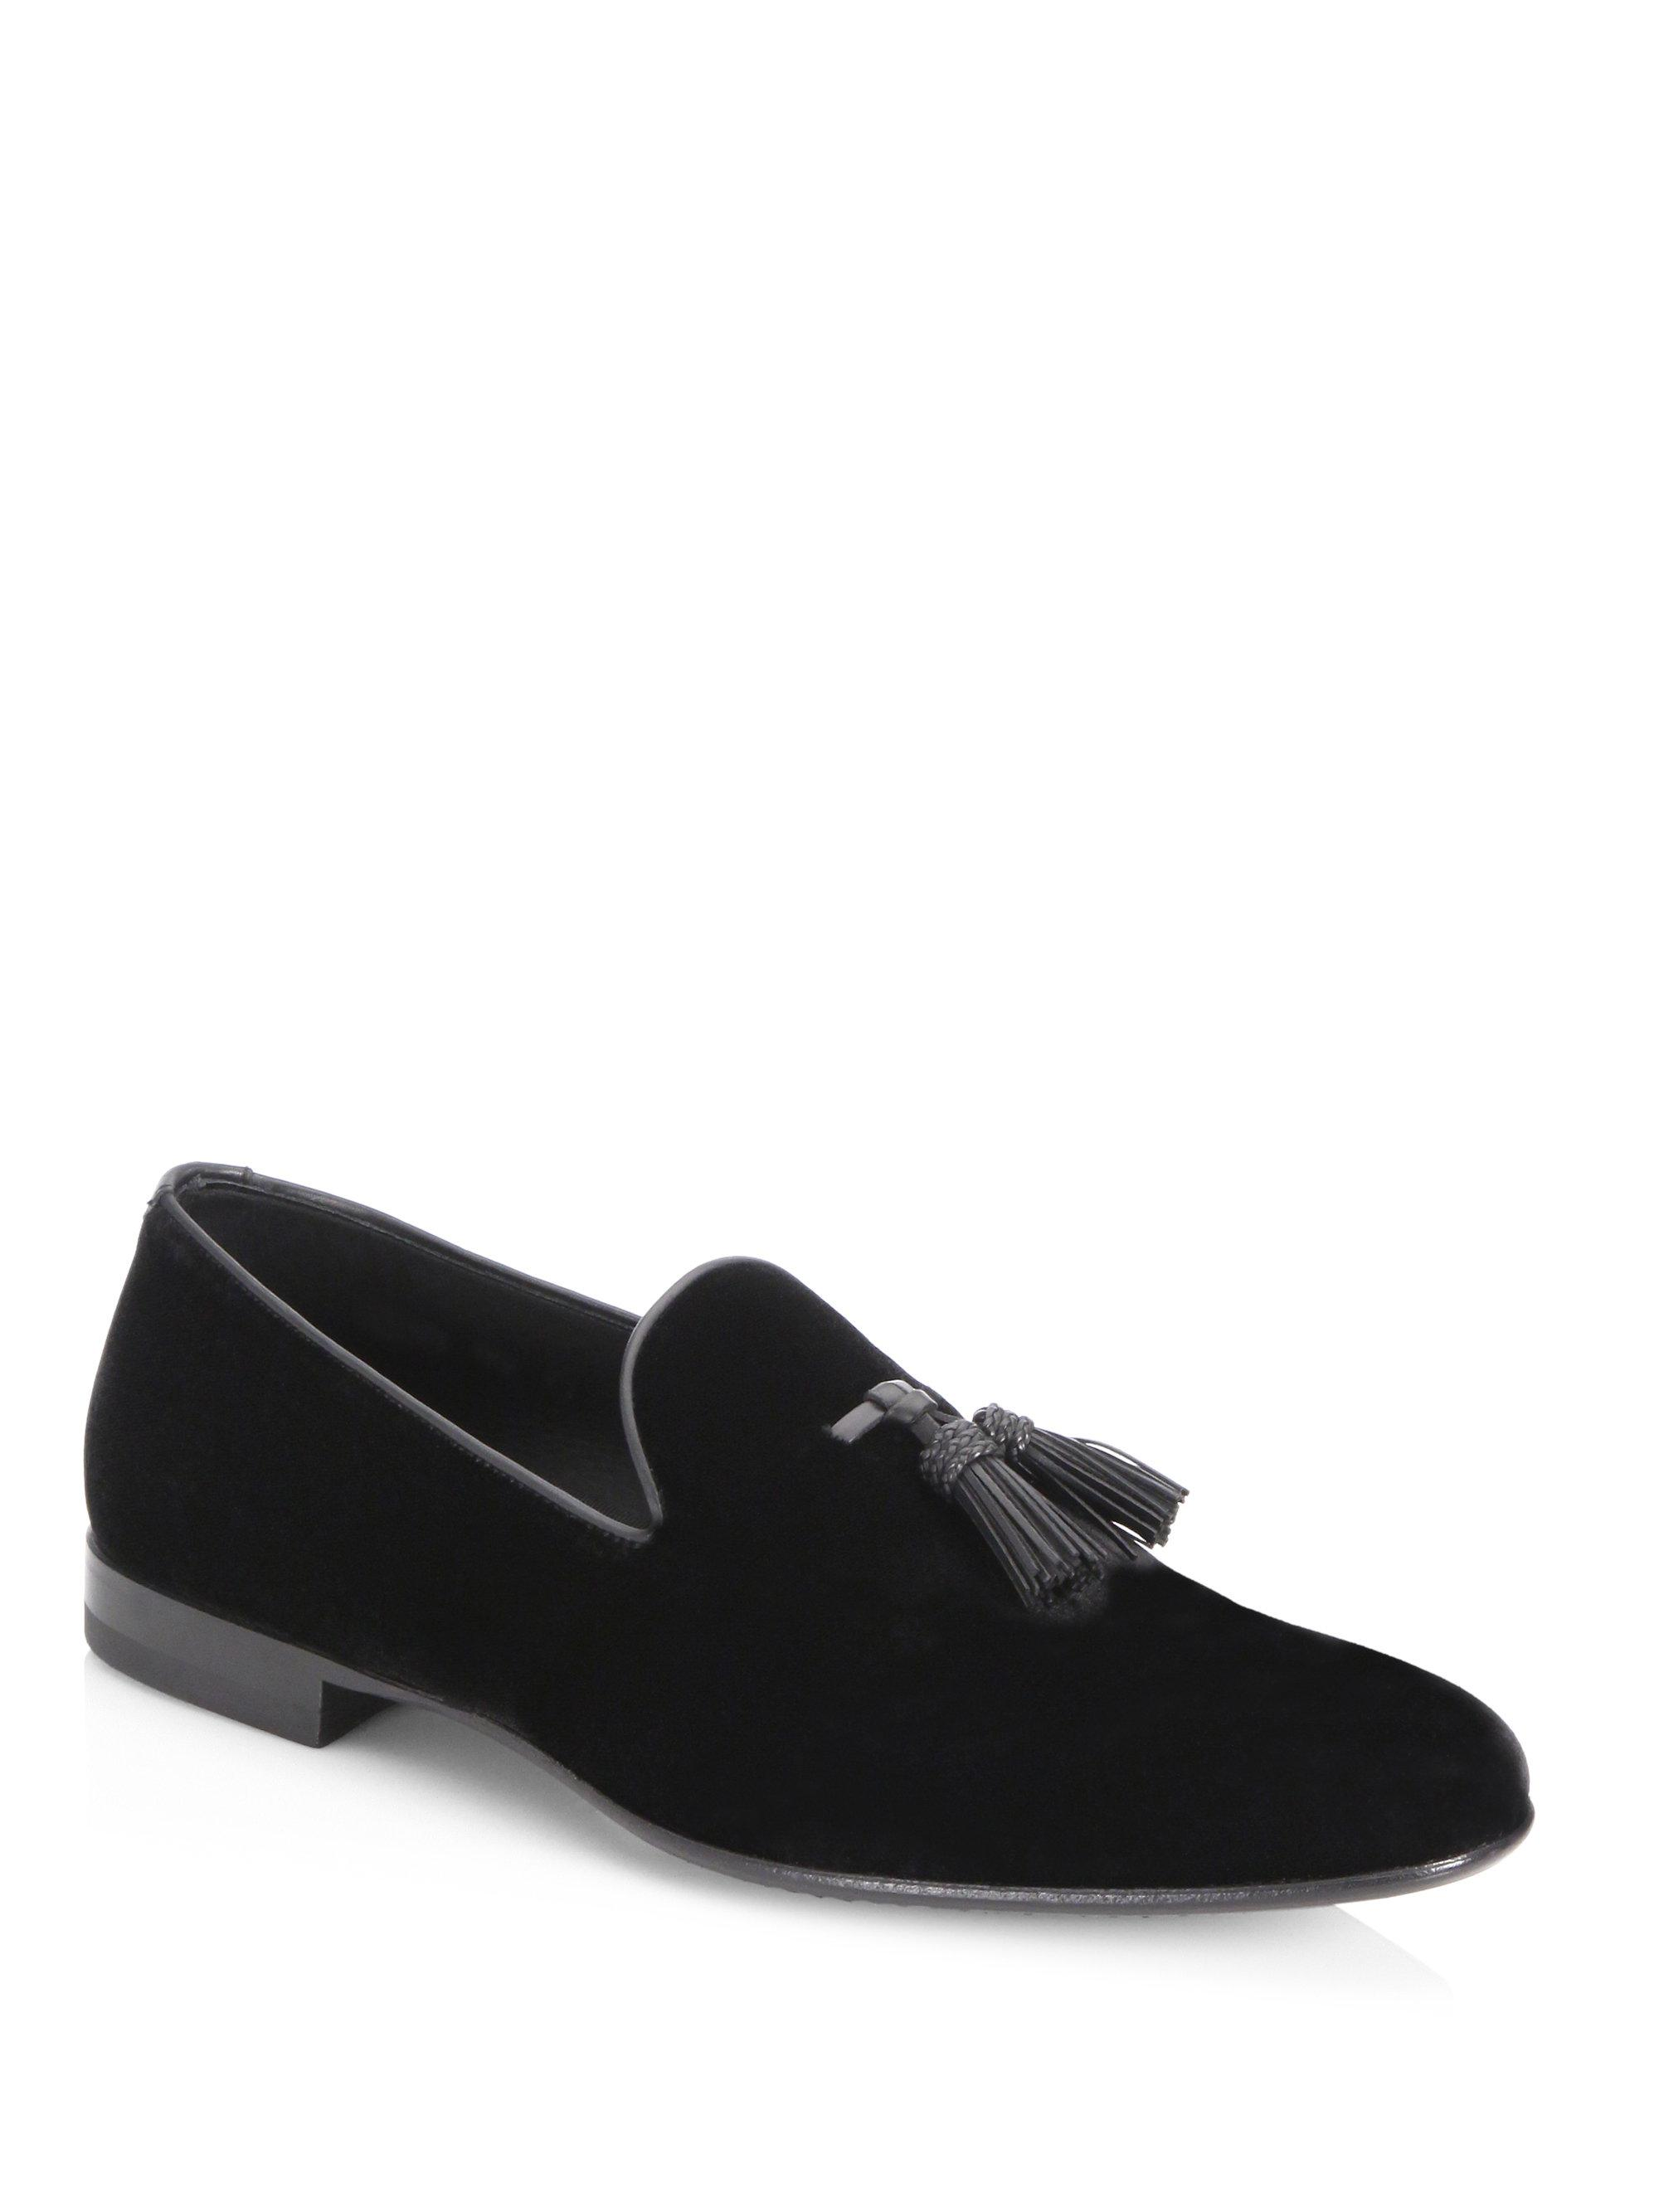 Saks Fifth AvenueCOLLECTION BY MAGNANNI Multi-Tassel Velvet Evening Loafers oFuBg1